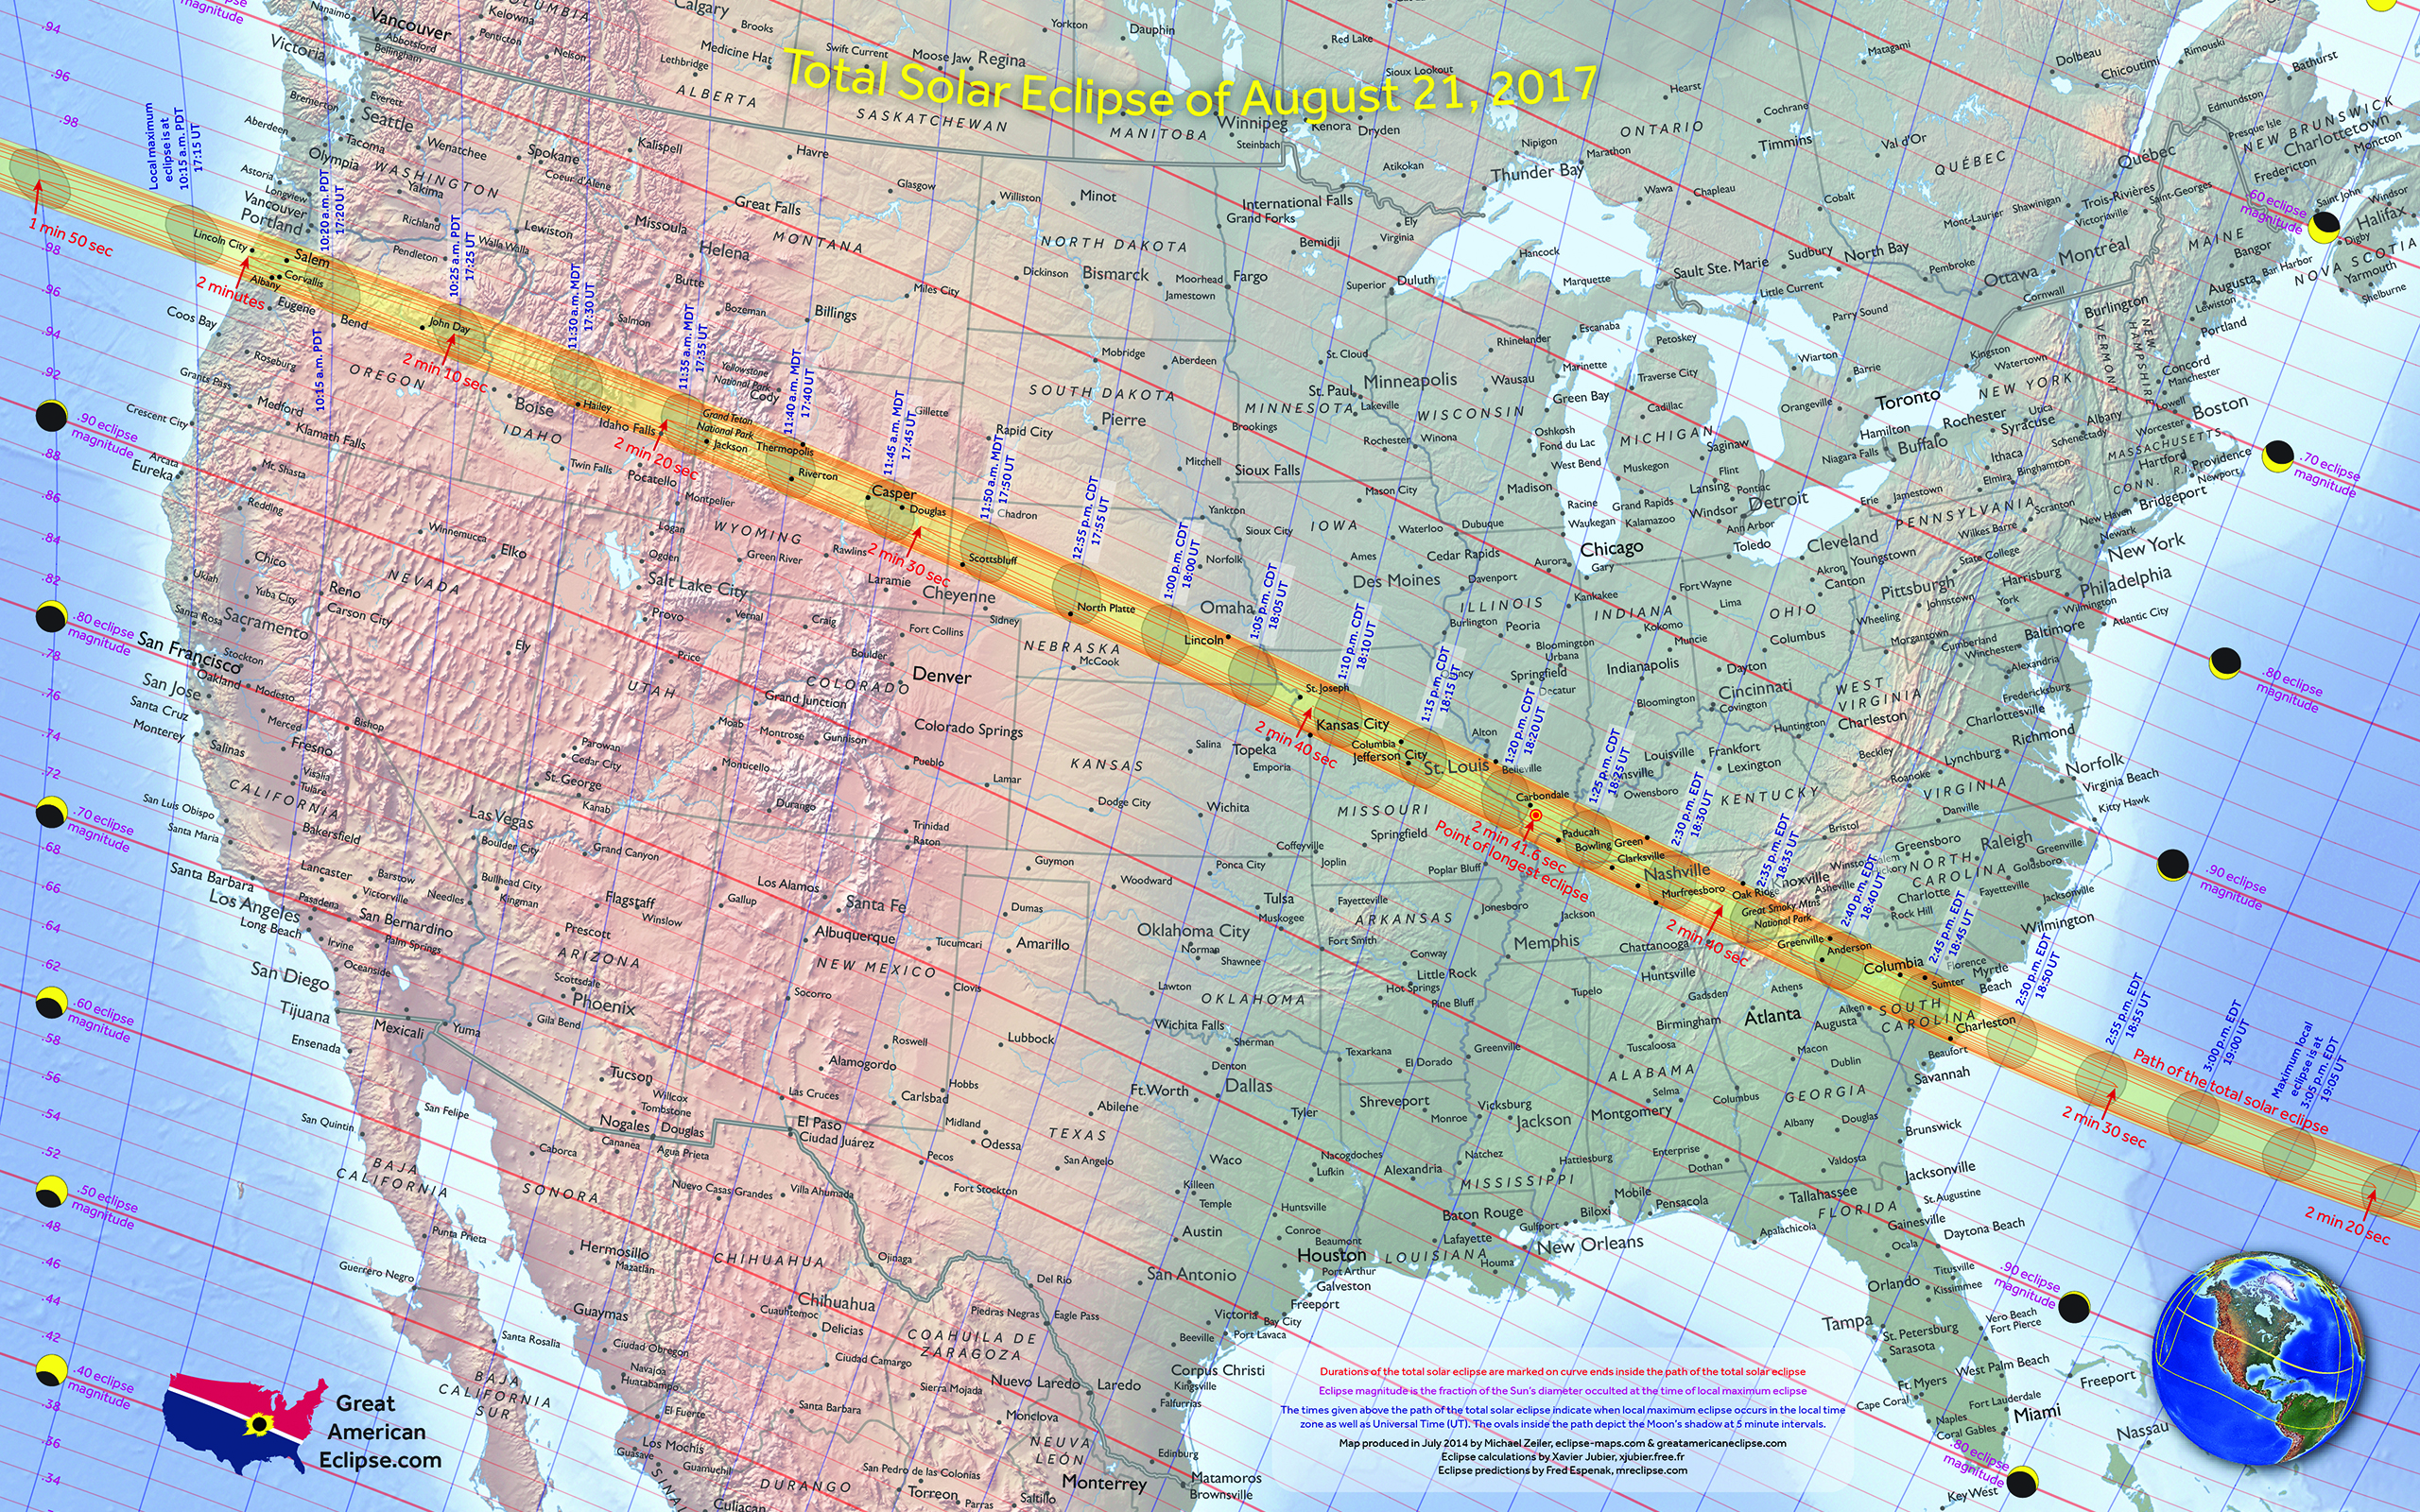 Michigan Will See A Near Total Solar Eclipse On August - Us total eclipse 2017 map